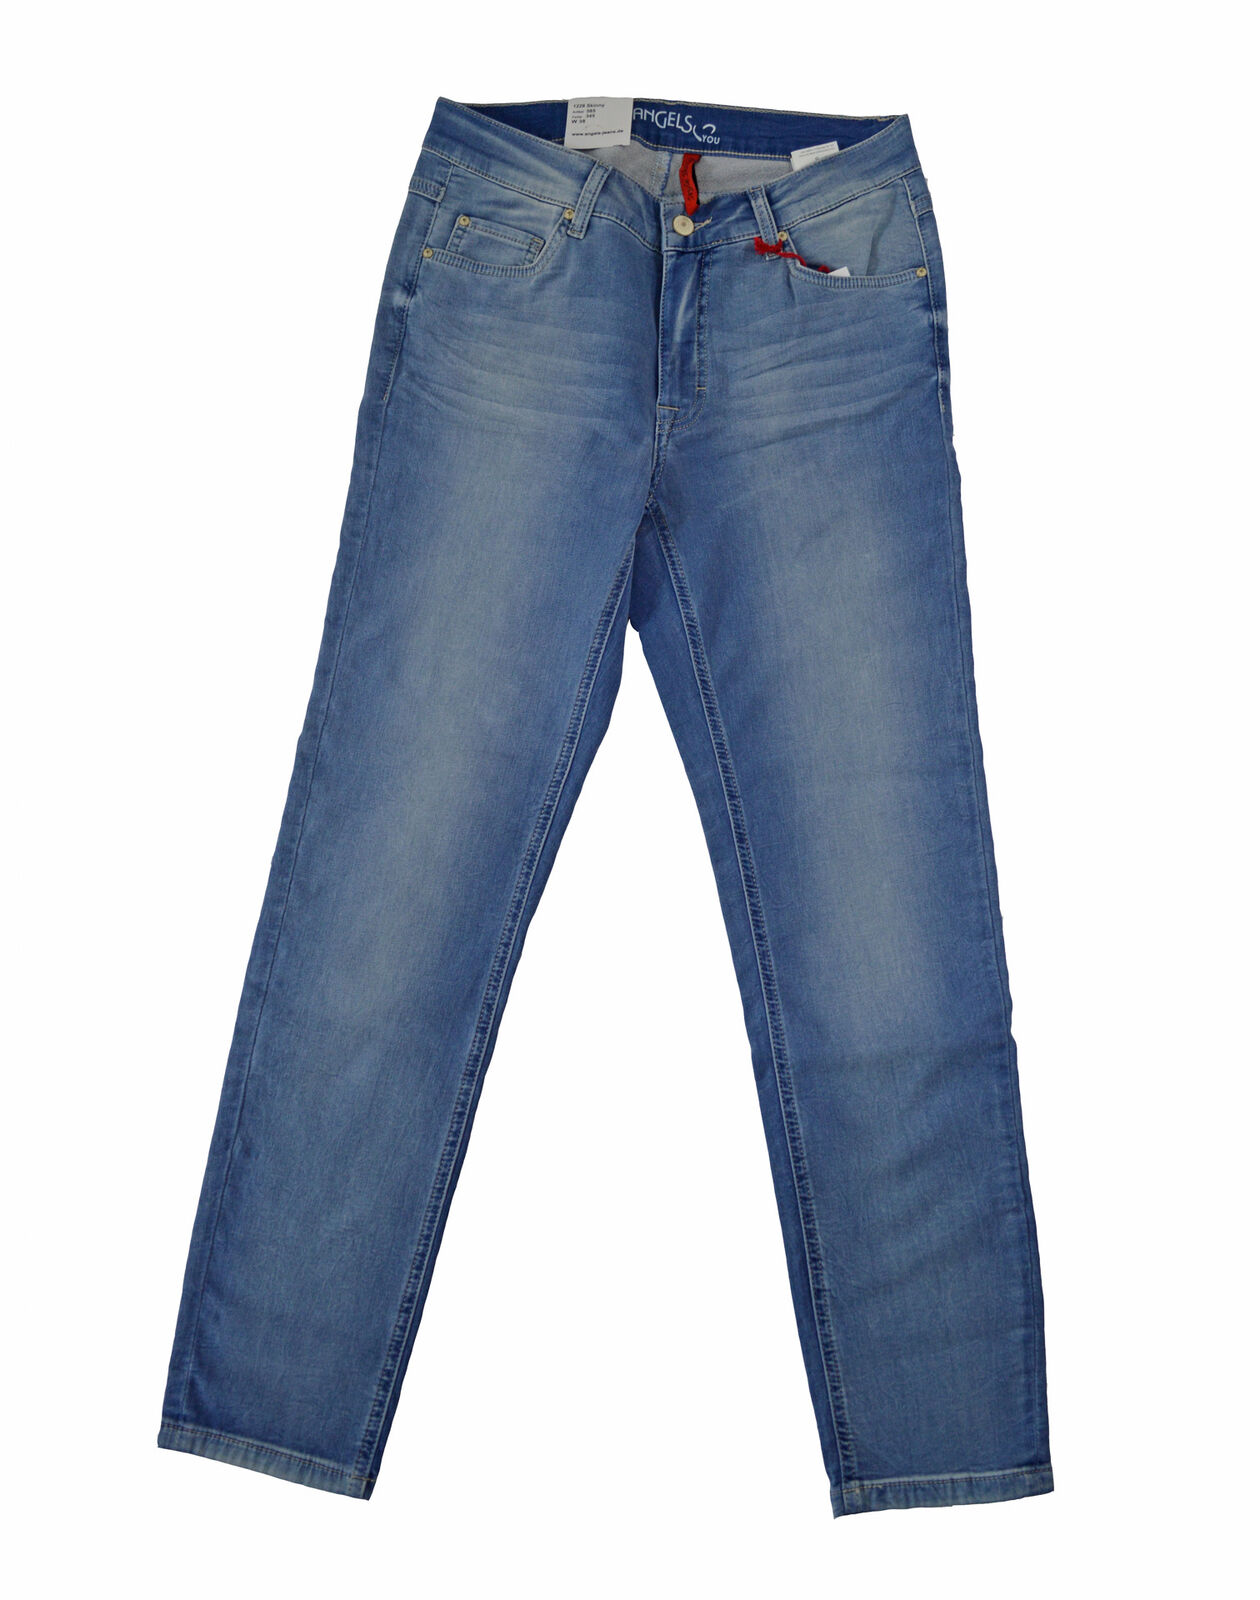 Angels Skinny Jeans Ferrà bluee Used Ladies of Trousers Röhrenjeans Many Sizes